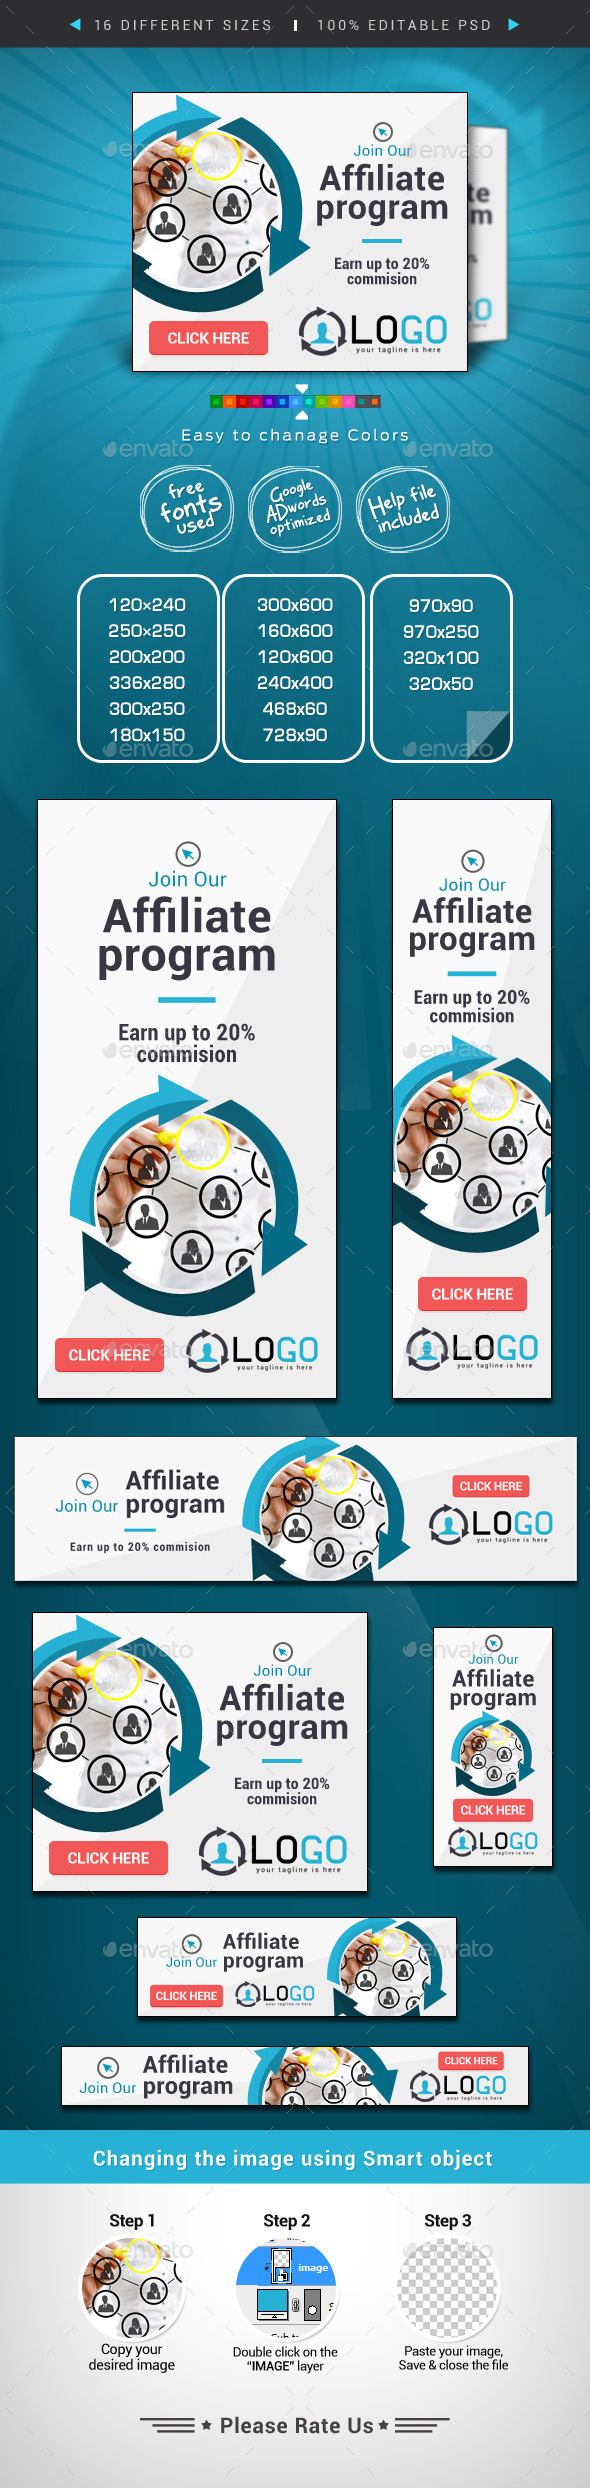 Affiliate Web Banner Design Template PSD | Buy and Download: http://graphicriver.net/item/affiliate-web-banner-design/8980488?WT.ac=category_thumb&WT.z_author=doto&ref=ksioks